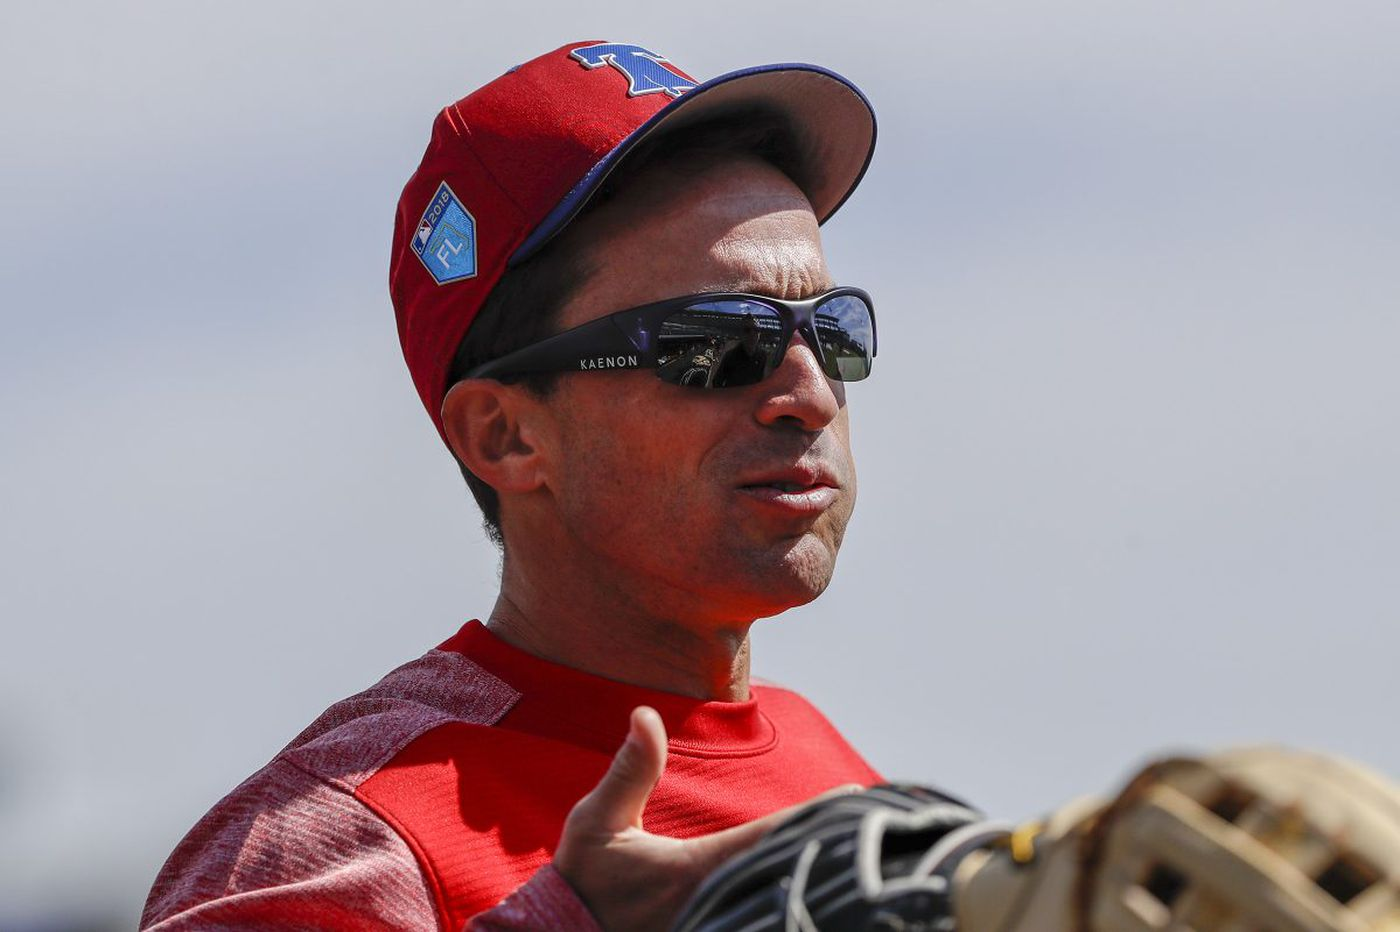 Sam Fuld: The man who helps Phillies players put analytics to use